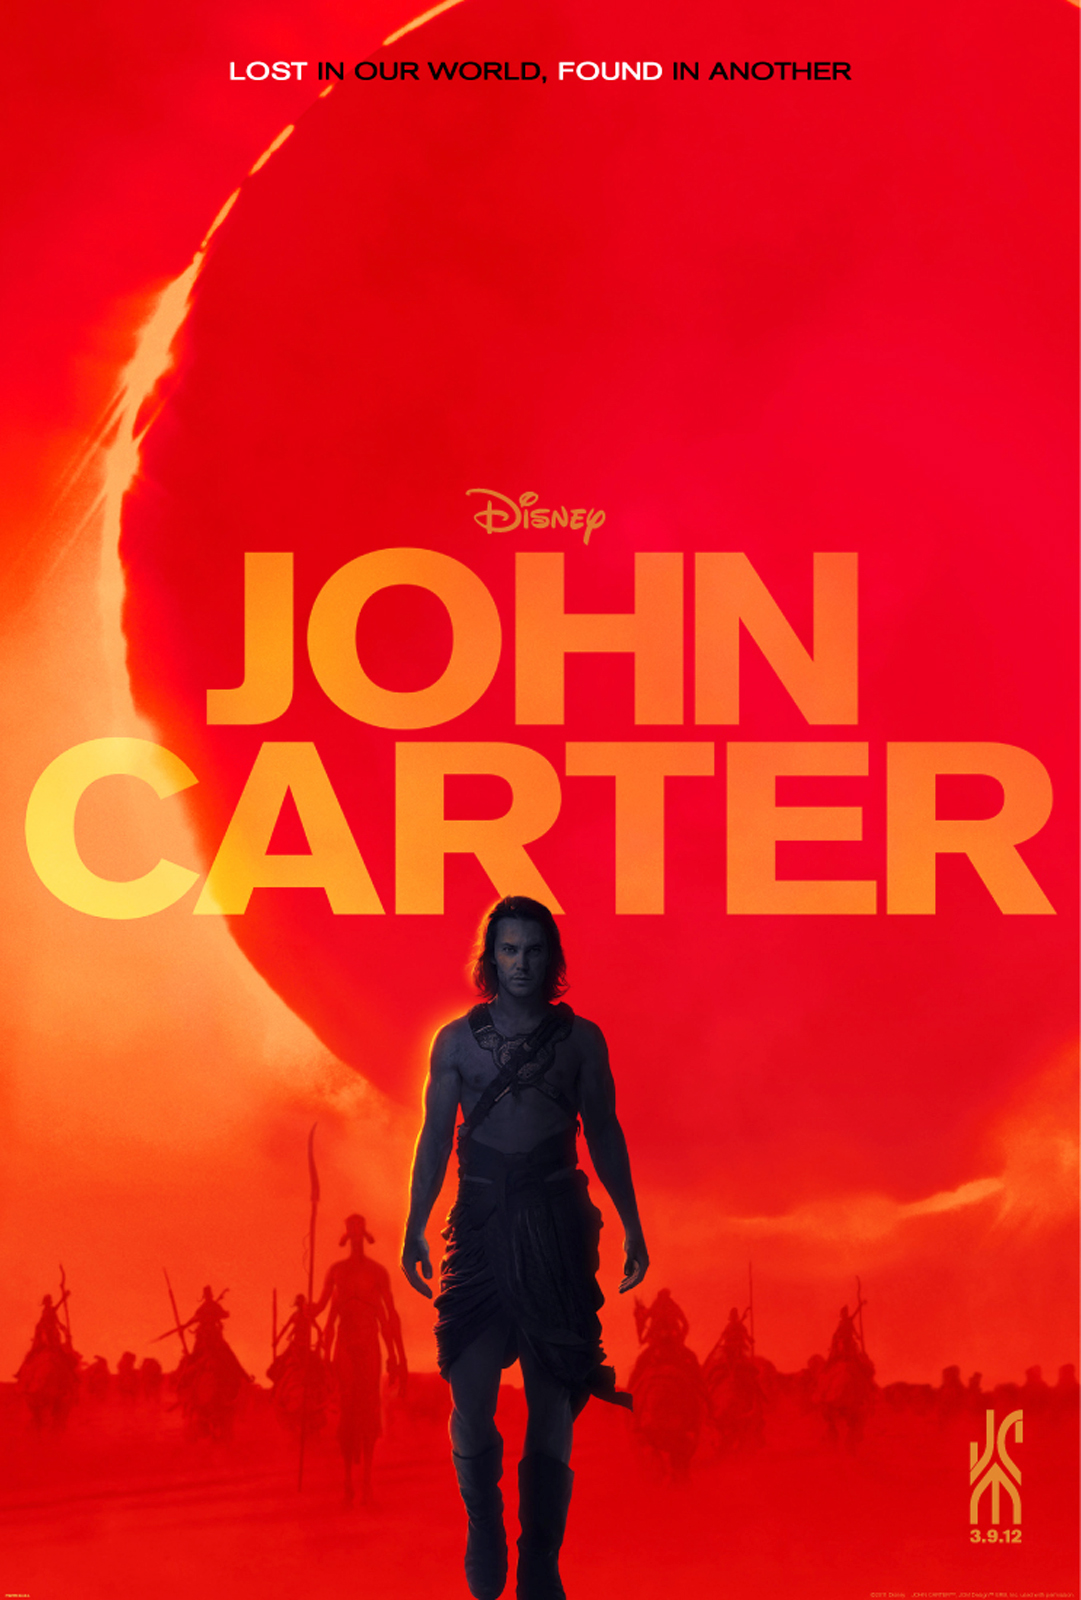 John Carter Movie Posters Hd Wallpapers Hd Wallpapers